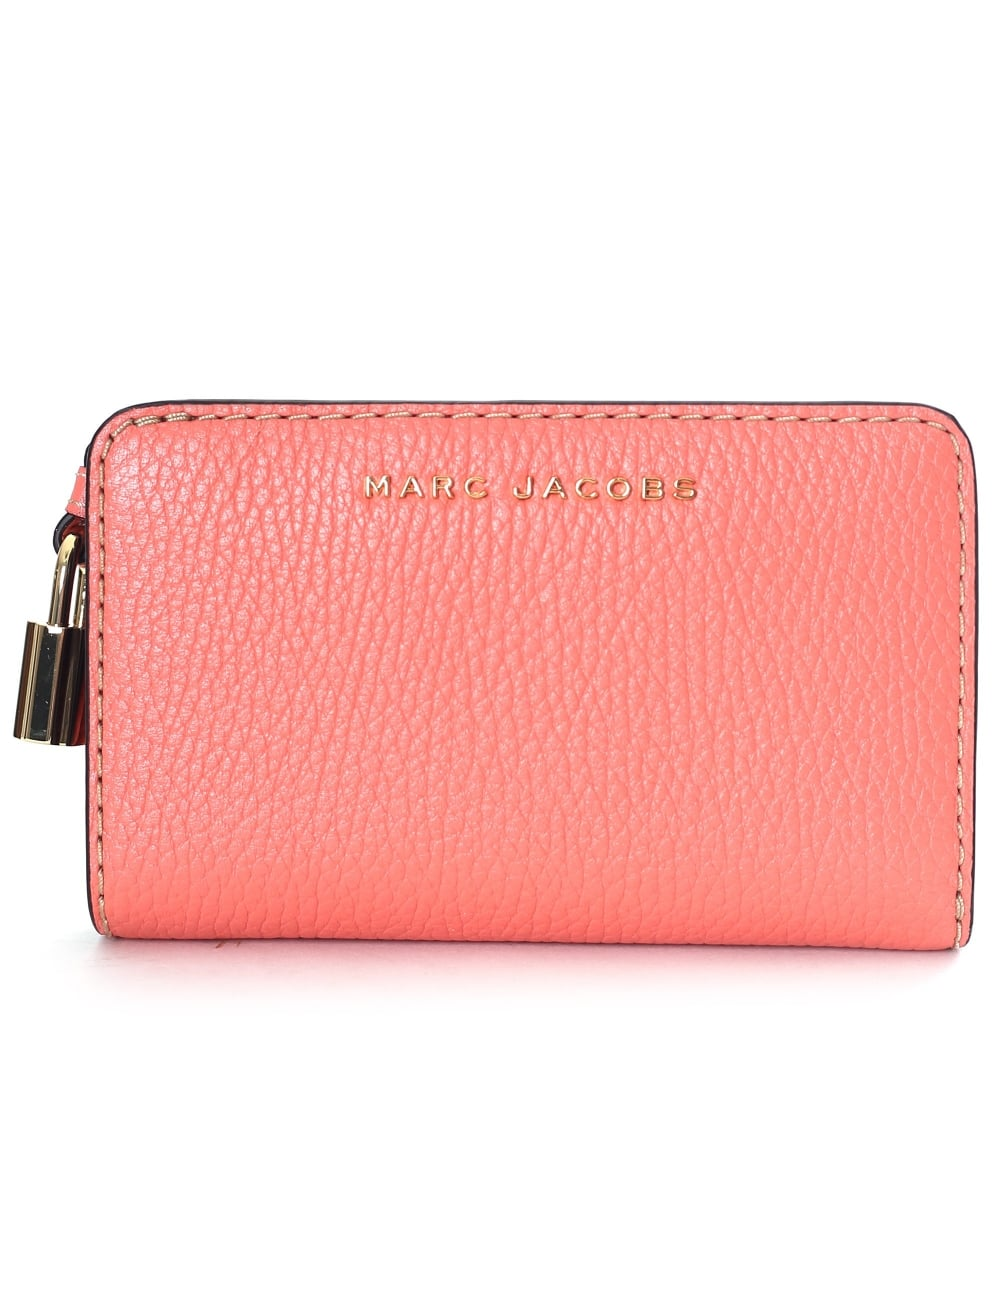 66c6e90a97 Marc Jacobs The Grind Women's Compact Wallet